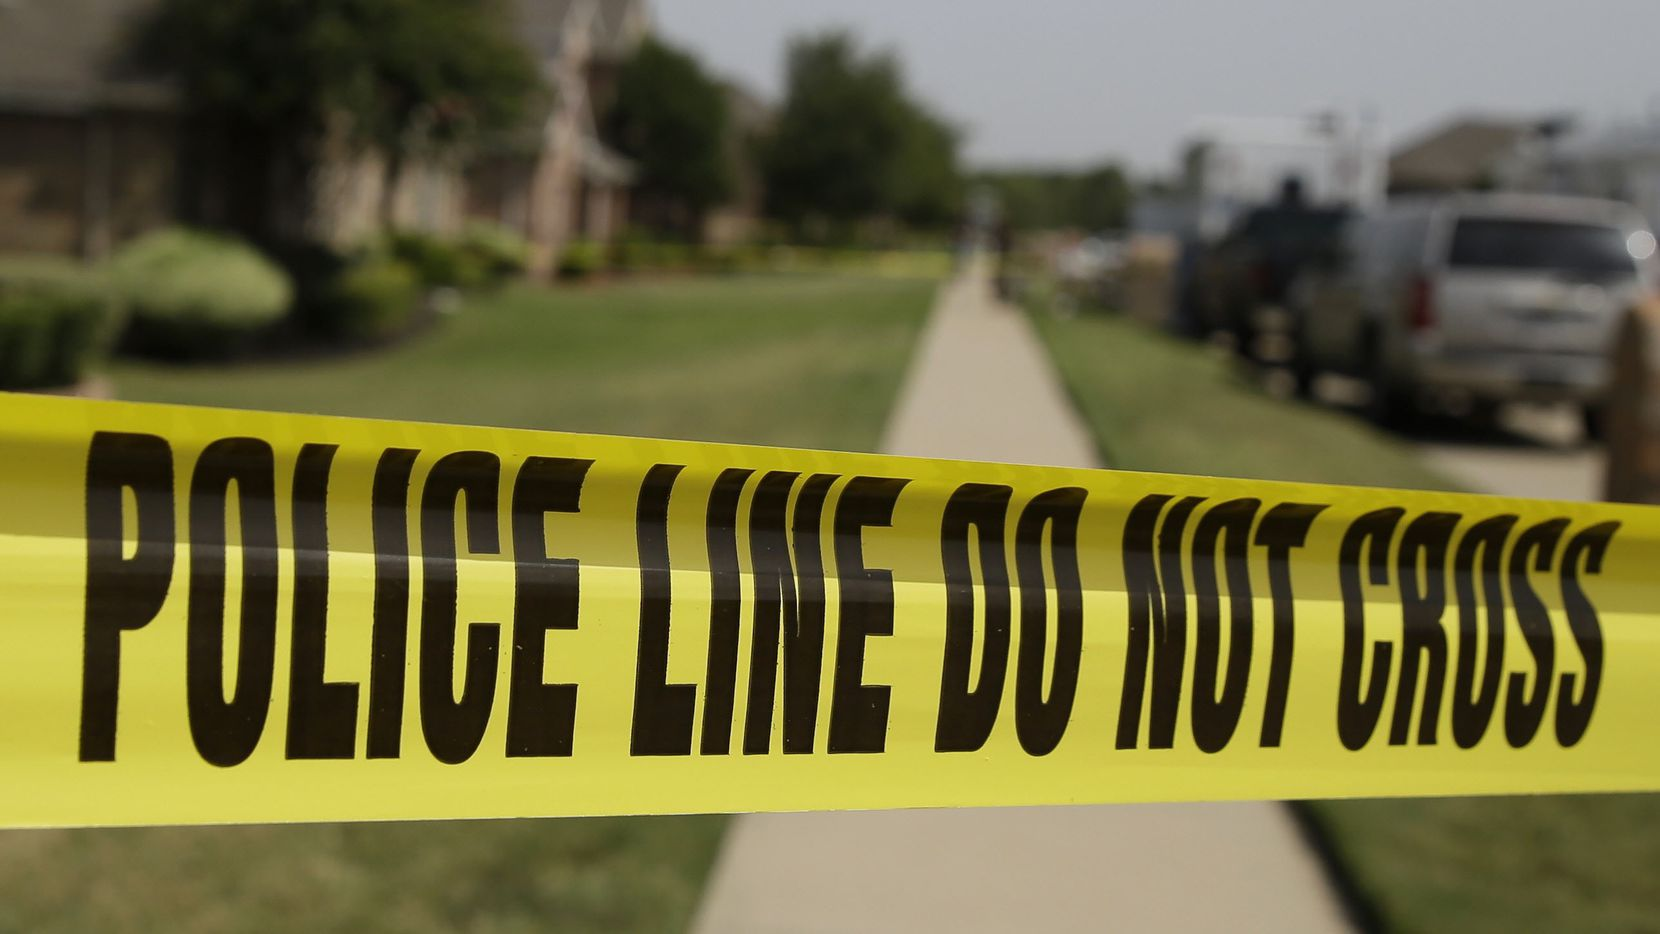 Crime scene tape marks off the area law enforcement investigators are working outside the house of a fatal shooting Thursday morning, Aug. 8, 2013, in DeSoto, Texas. A man has been arrested in the fatal shooting of four people in two Dallas-area homes, just minutes apart, and police are investigating if he used a grenade or other explosive in one of the attacks.  Investigators arrested Erbie Bowser, 44, on Wednesday night at the second crime scene, DeSoto police Cpl. Melissa Franks said. Charges are pending, she said. (AP Photo/LM Otero) 09222013xNEWS